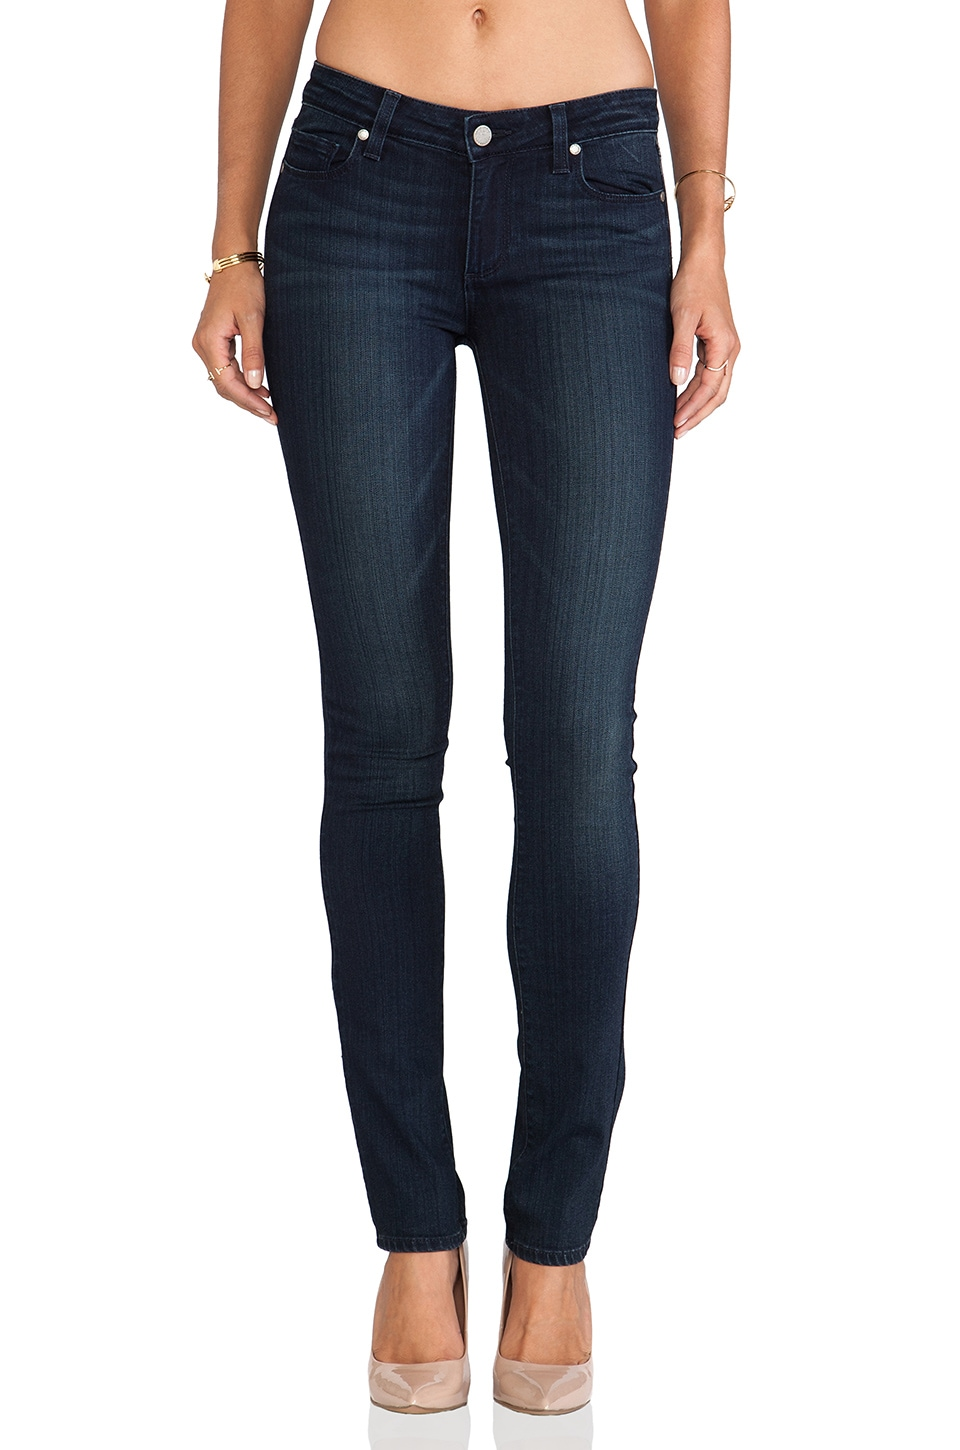 Paige Denim Skyline Straight in Midlake